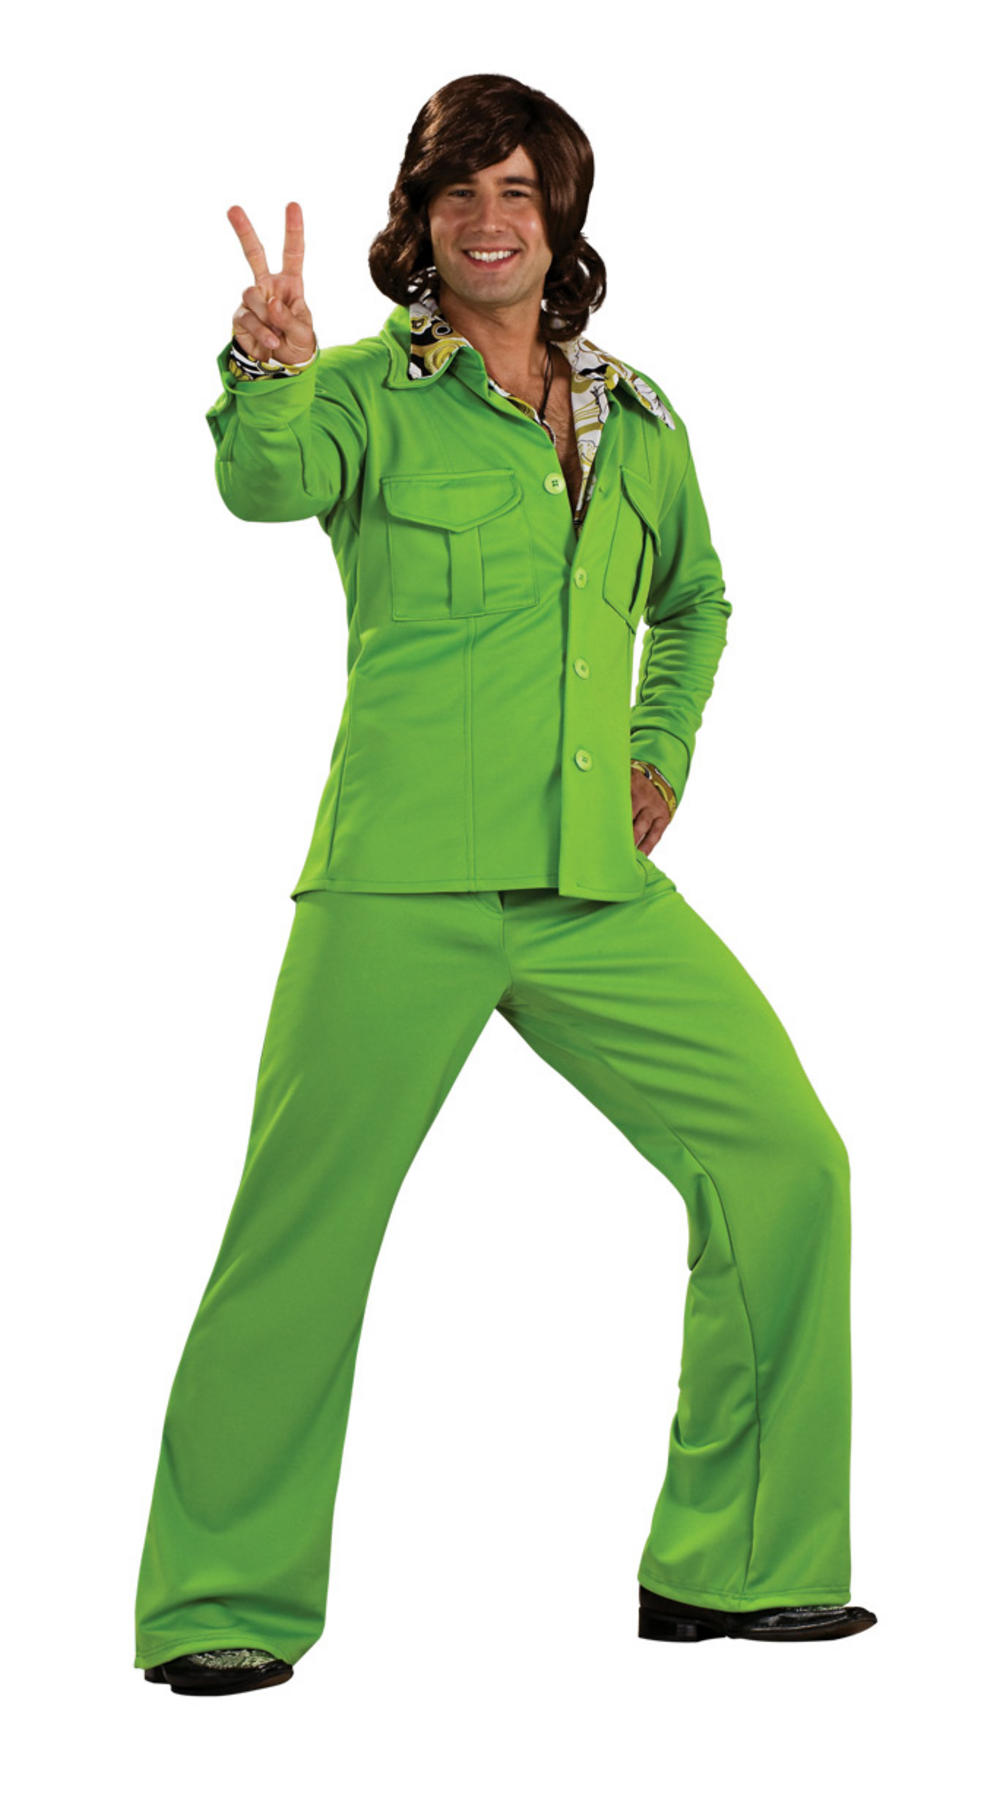 70s Green Leisure Suit Costume